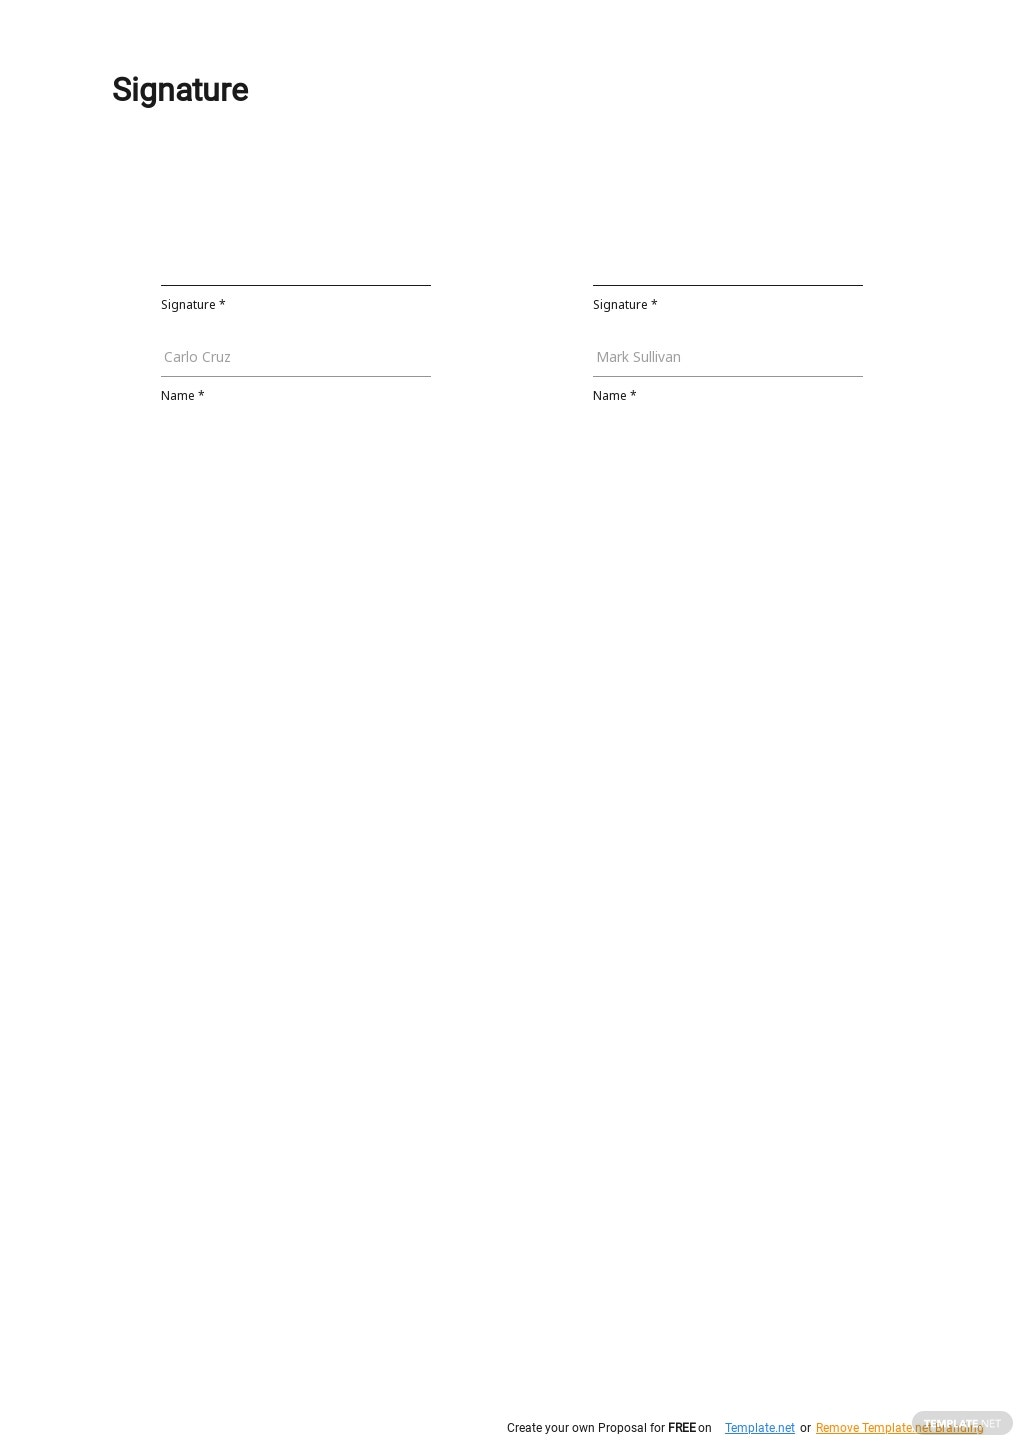 Independent Contractor Agreement Template 2.jpe